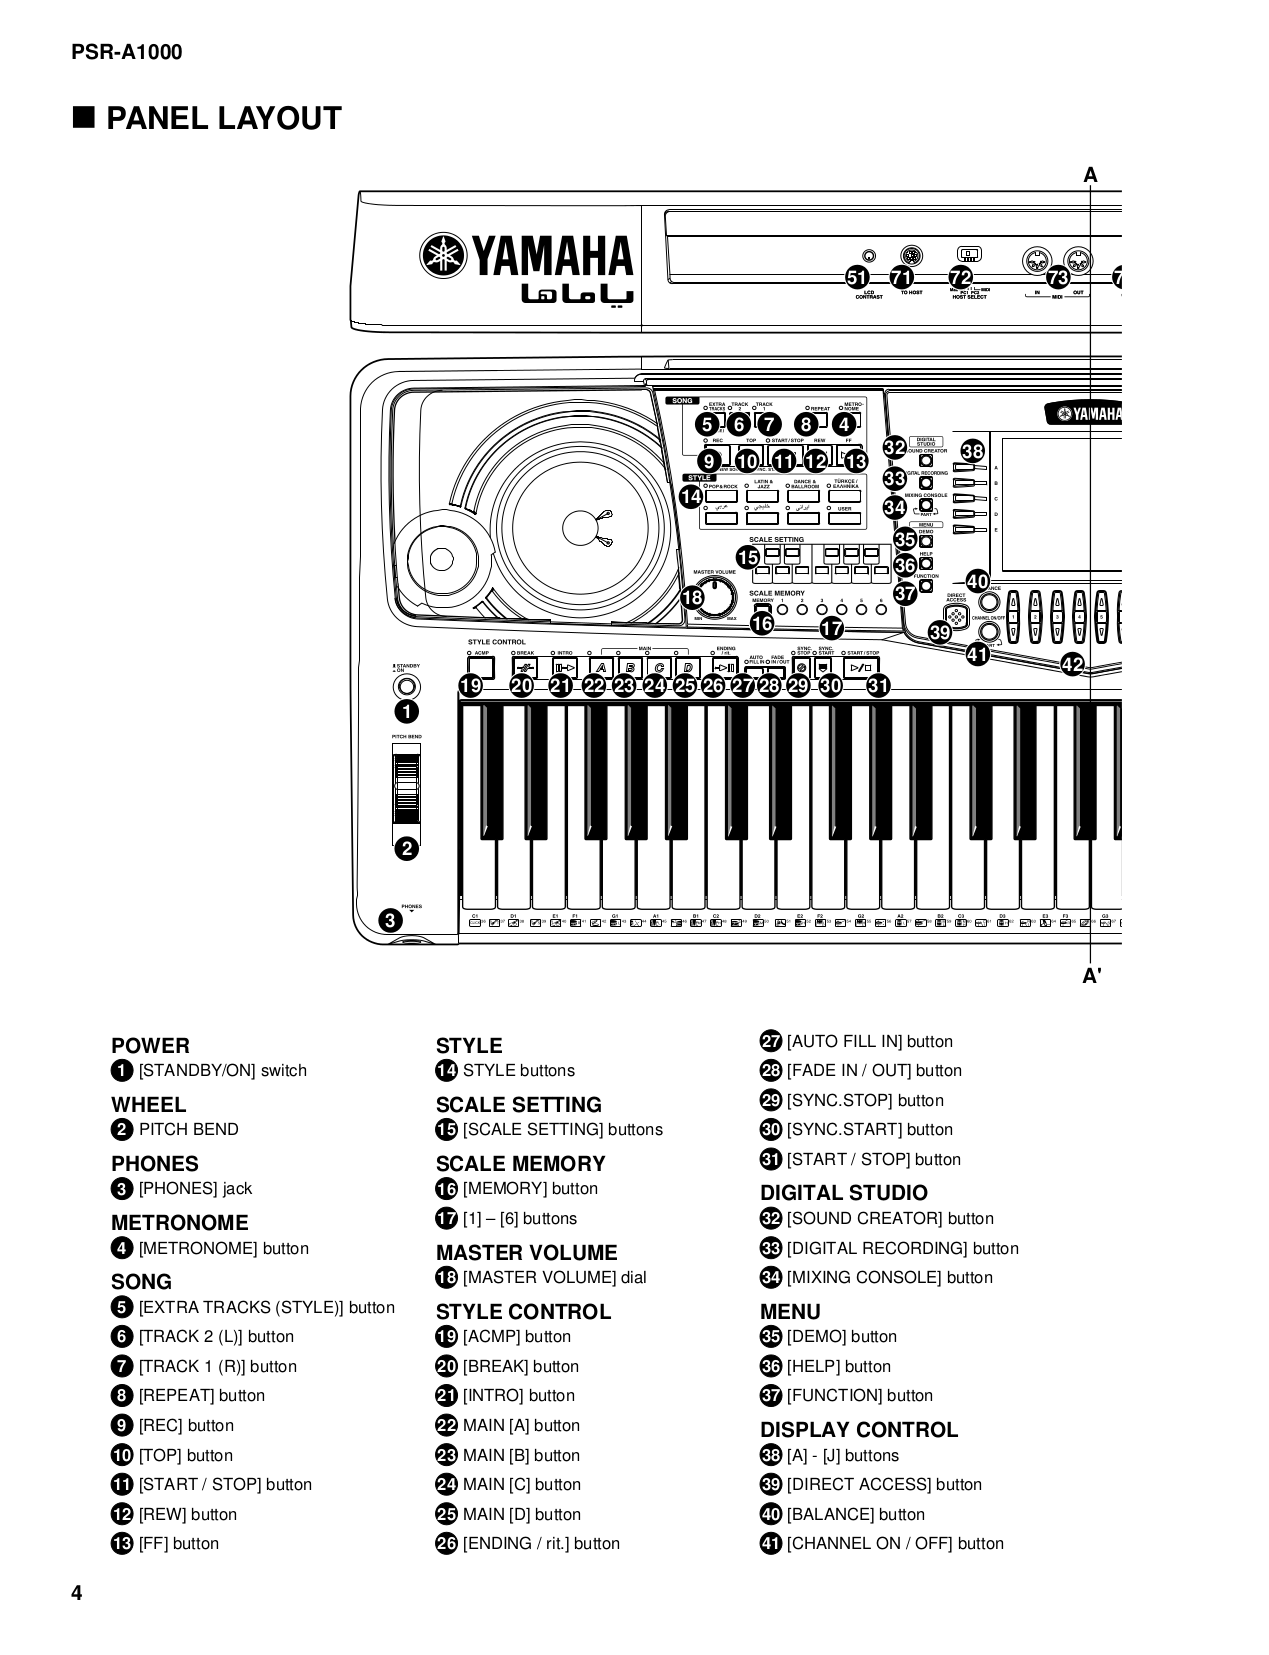 PDF manual for Yamaha Music Keyboard PSR-1000